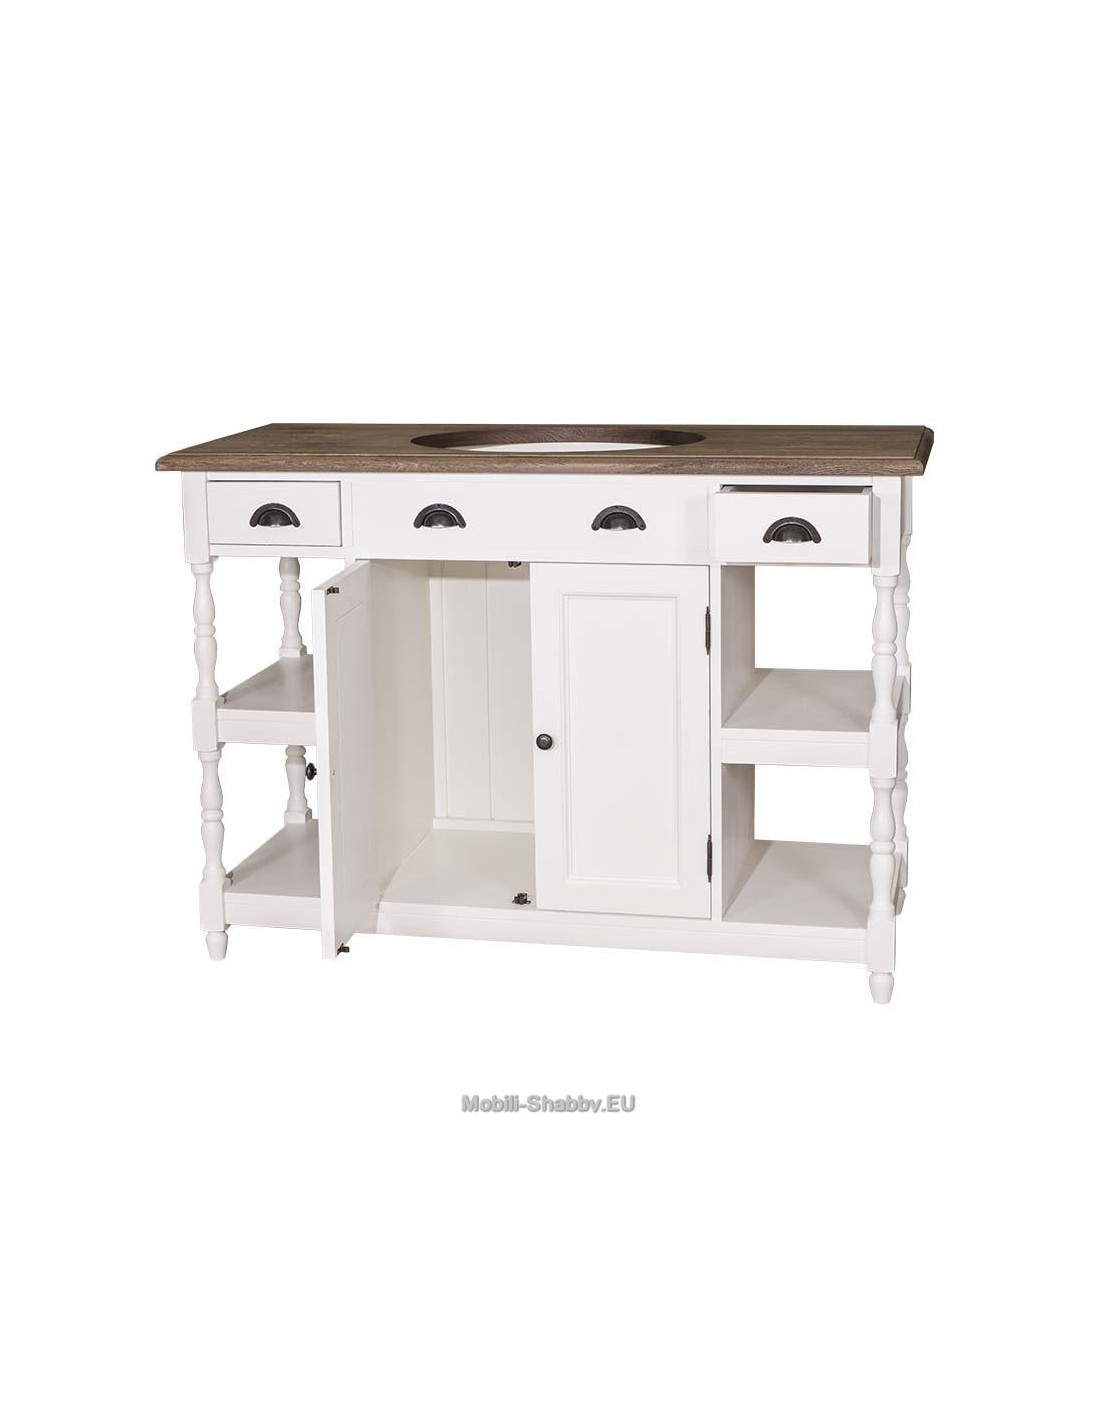 Mobile bagno shabby chic ante e cassetti ms545 mobili for Mobili shabby chic